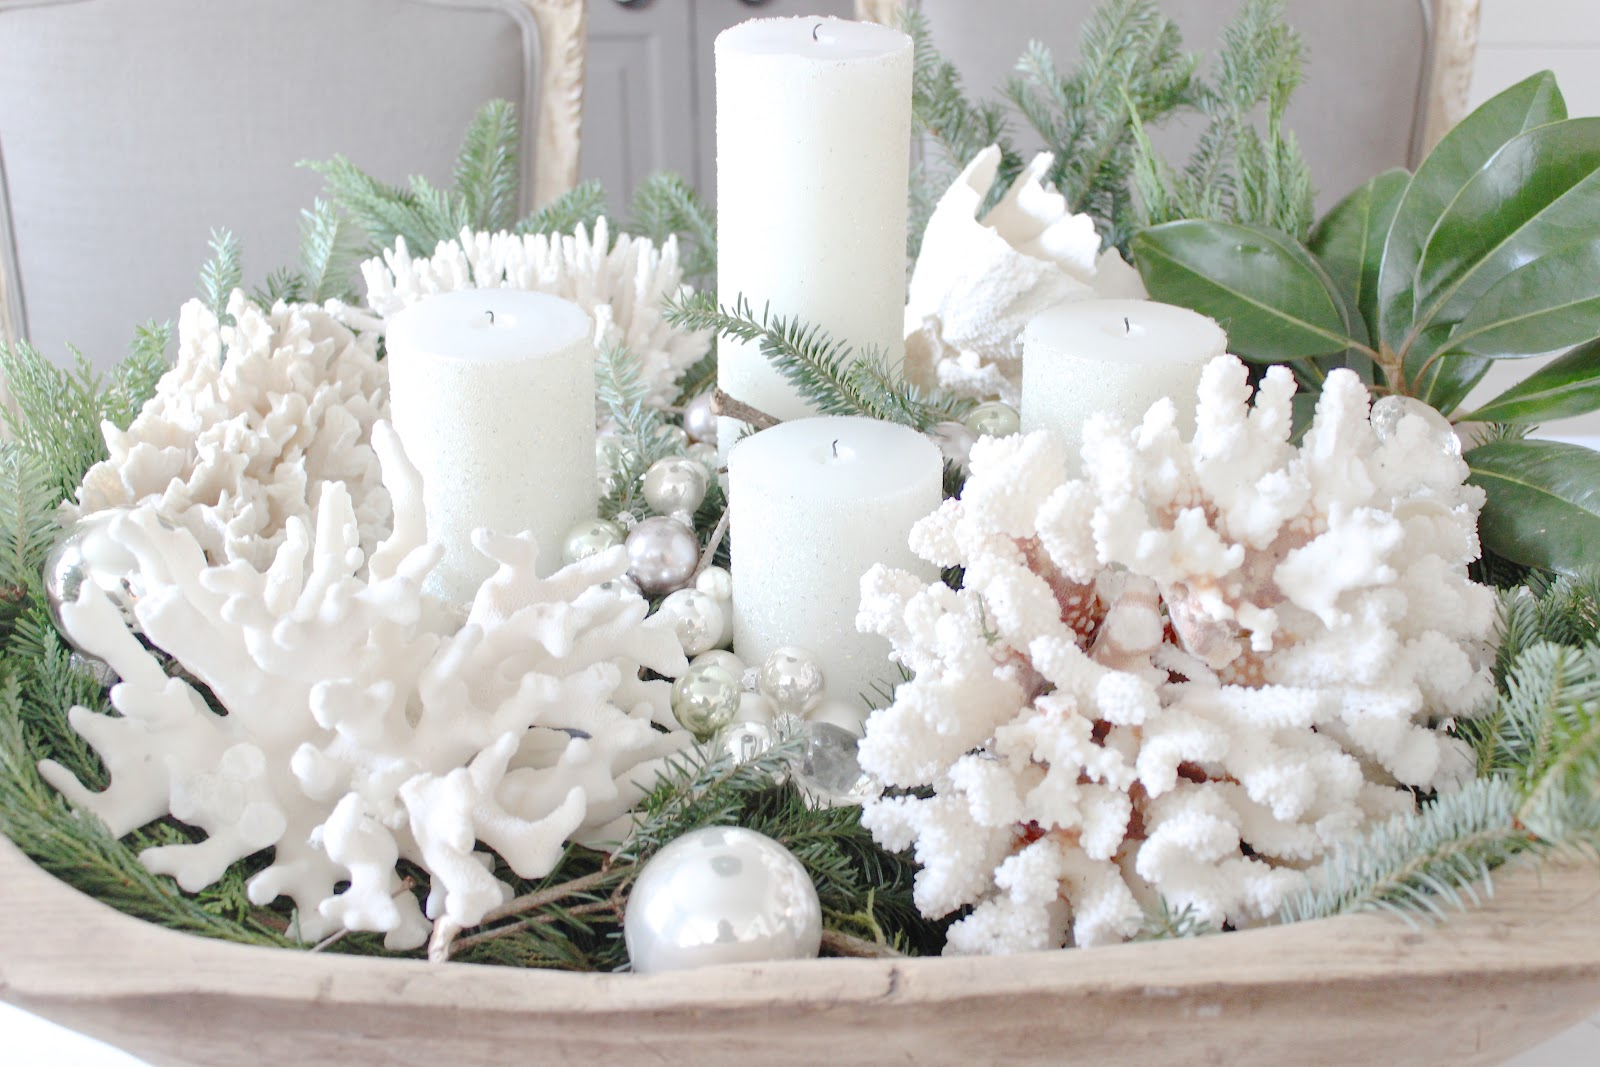 Coastal Christmas ingredients in a rustic dough bowl include coral, candles, magnolia leaves and evegreens - Sherry Hart.